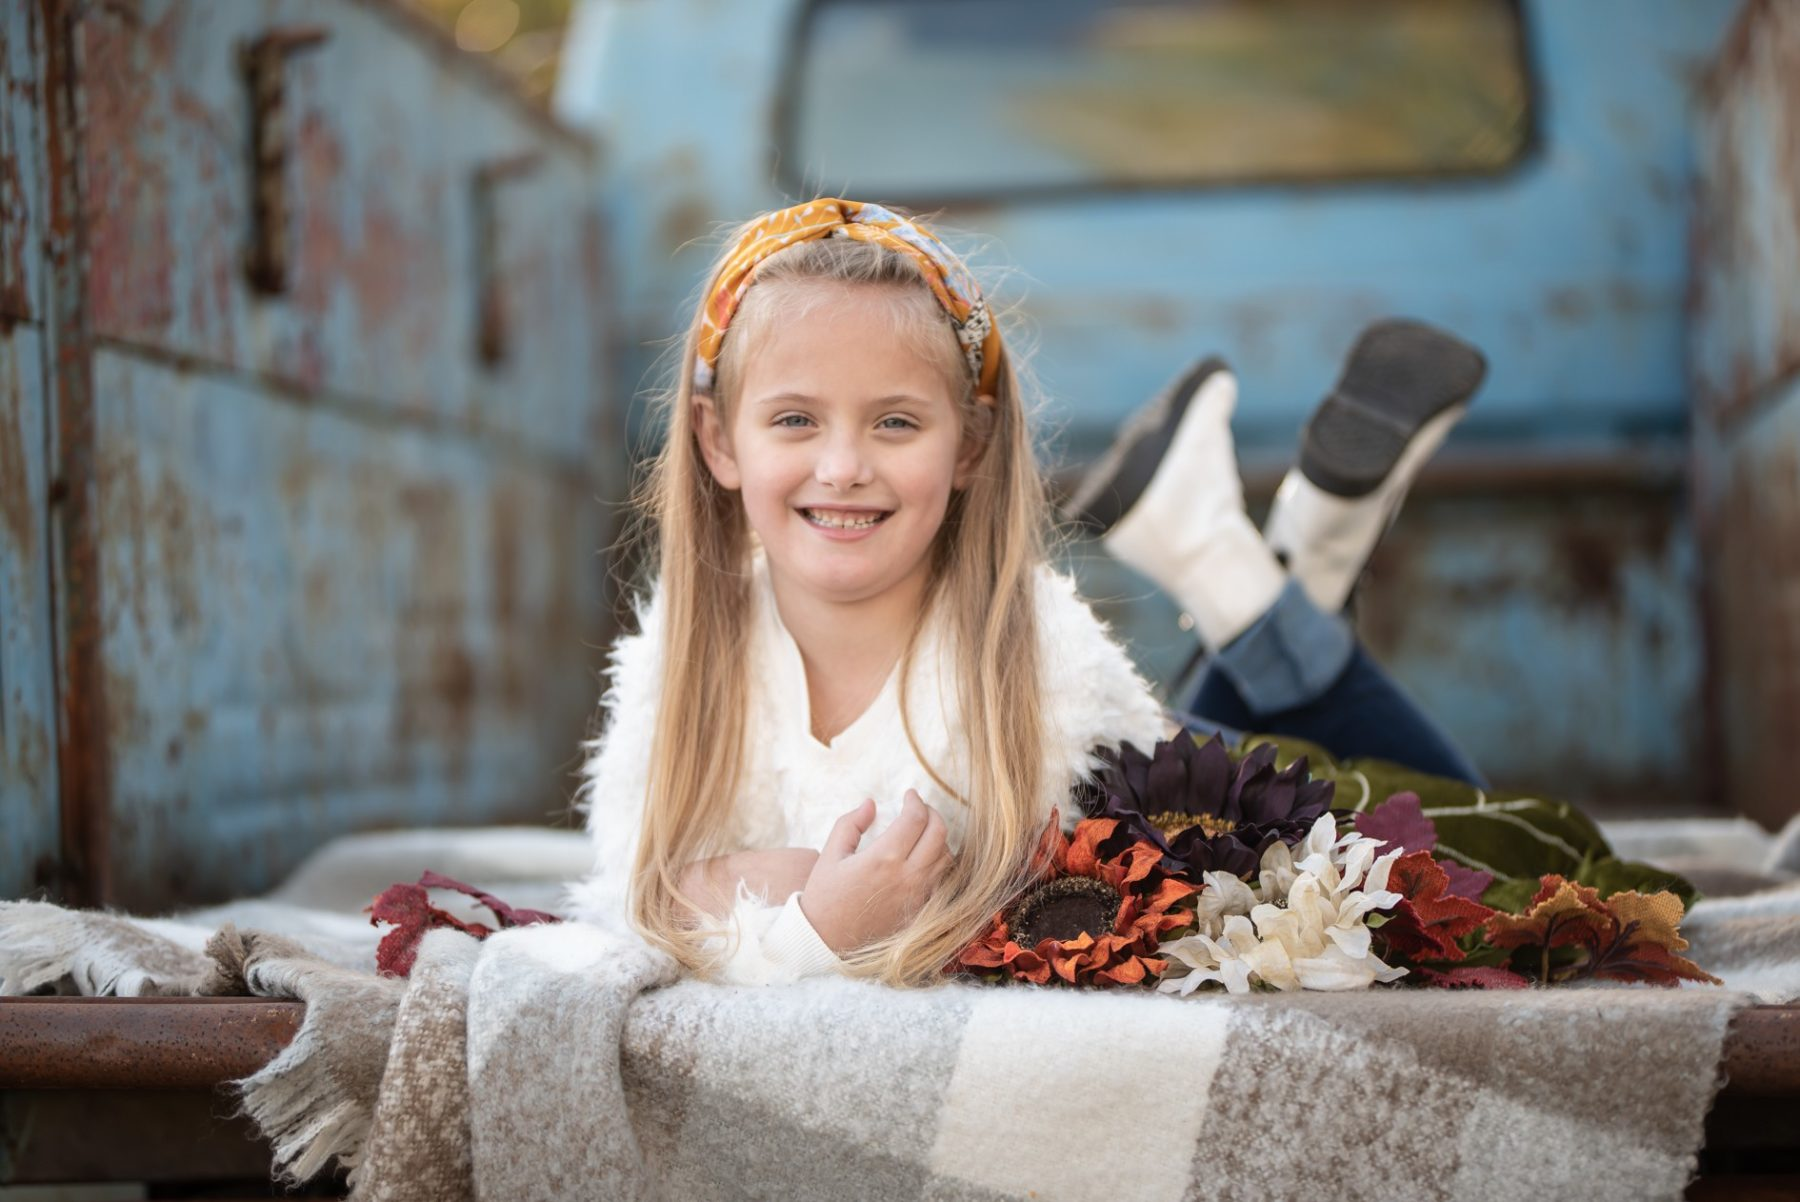 Raynah's 6 Year Photo Shoot with CeMe Photography featured on Nashville Baby Guide